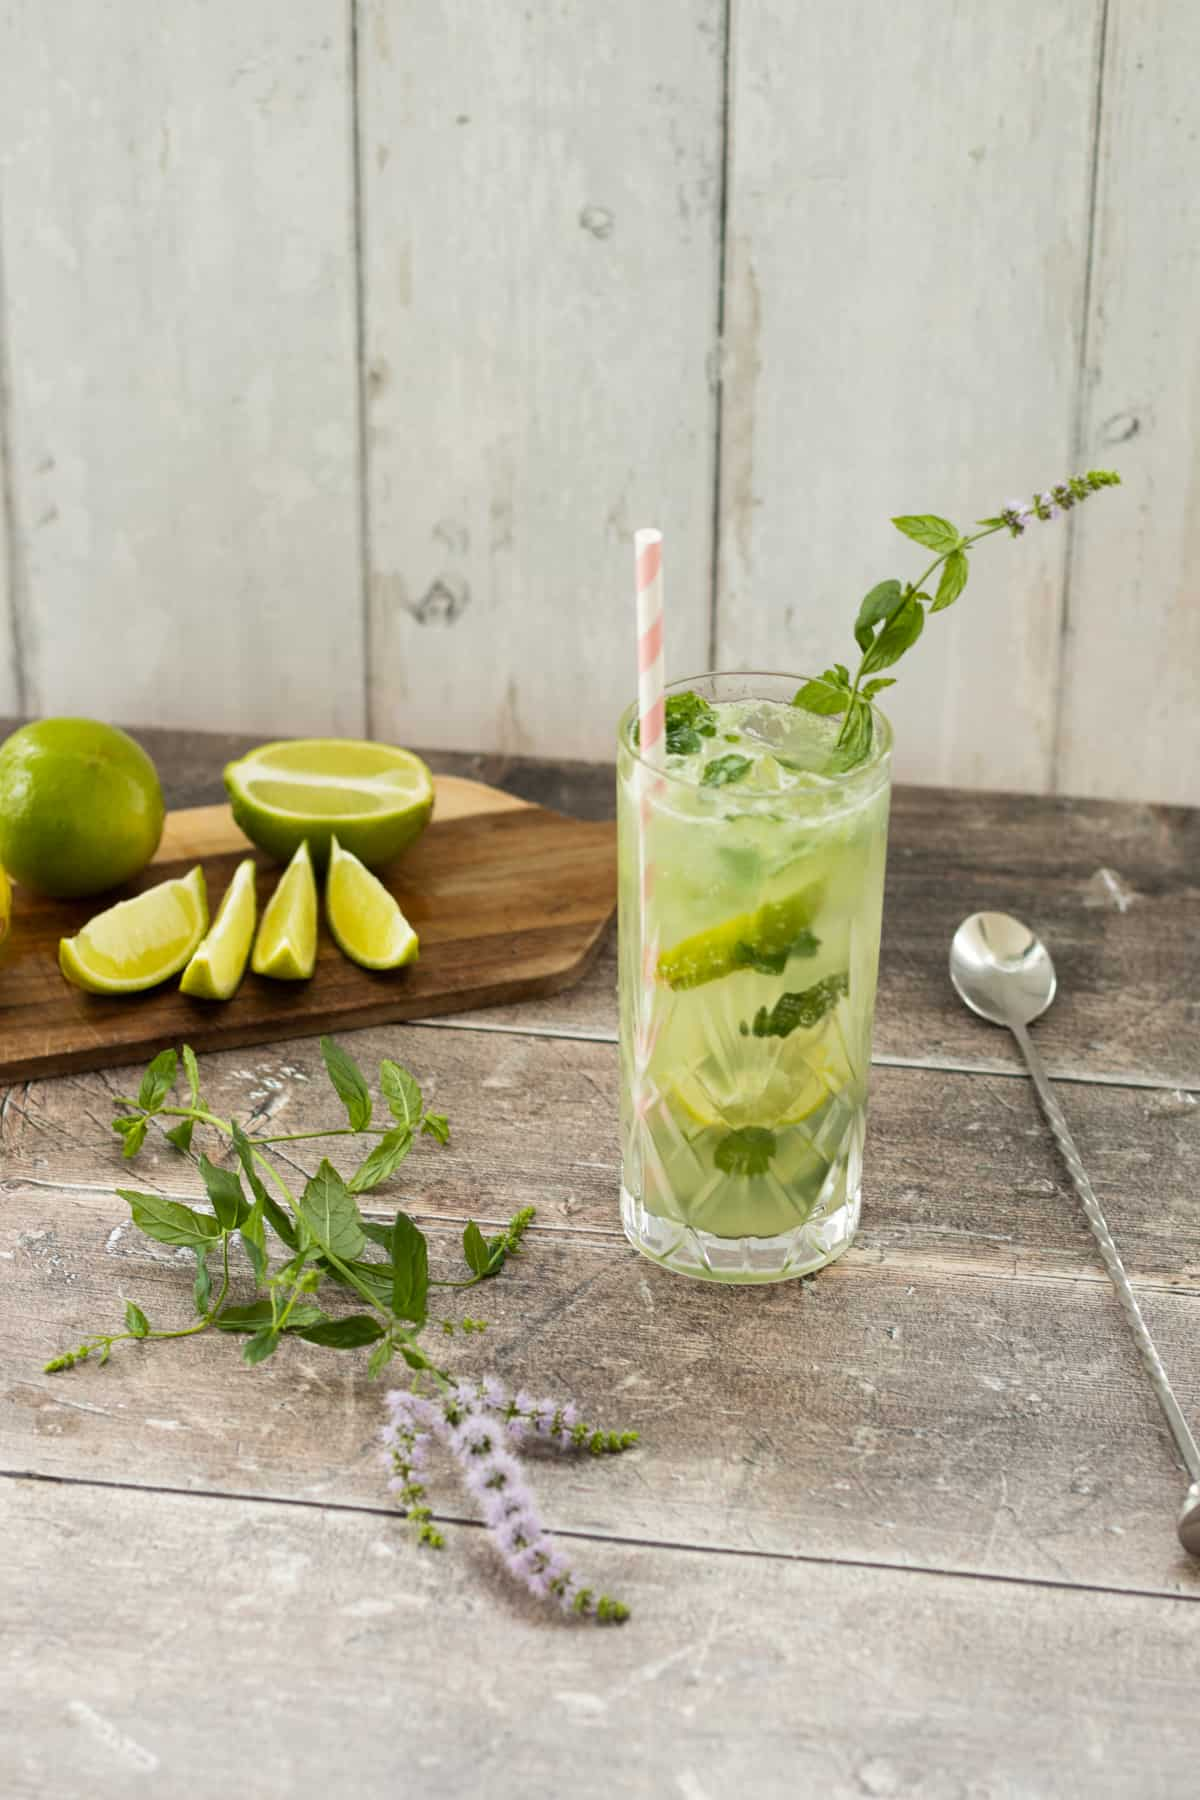 mojito mocktail next to a sprig of mint and some lime wedges